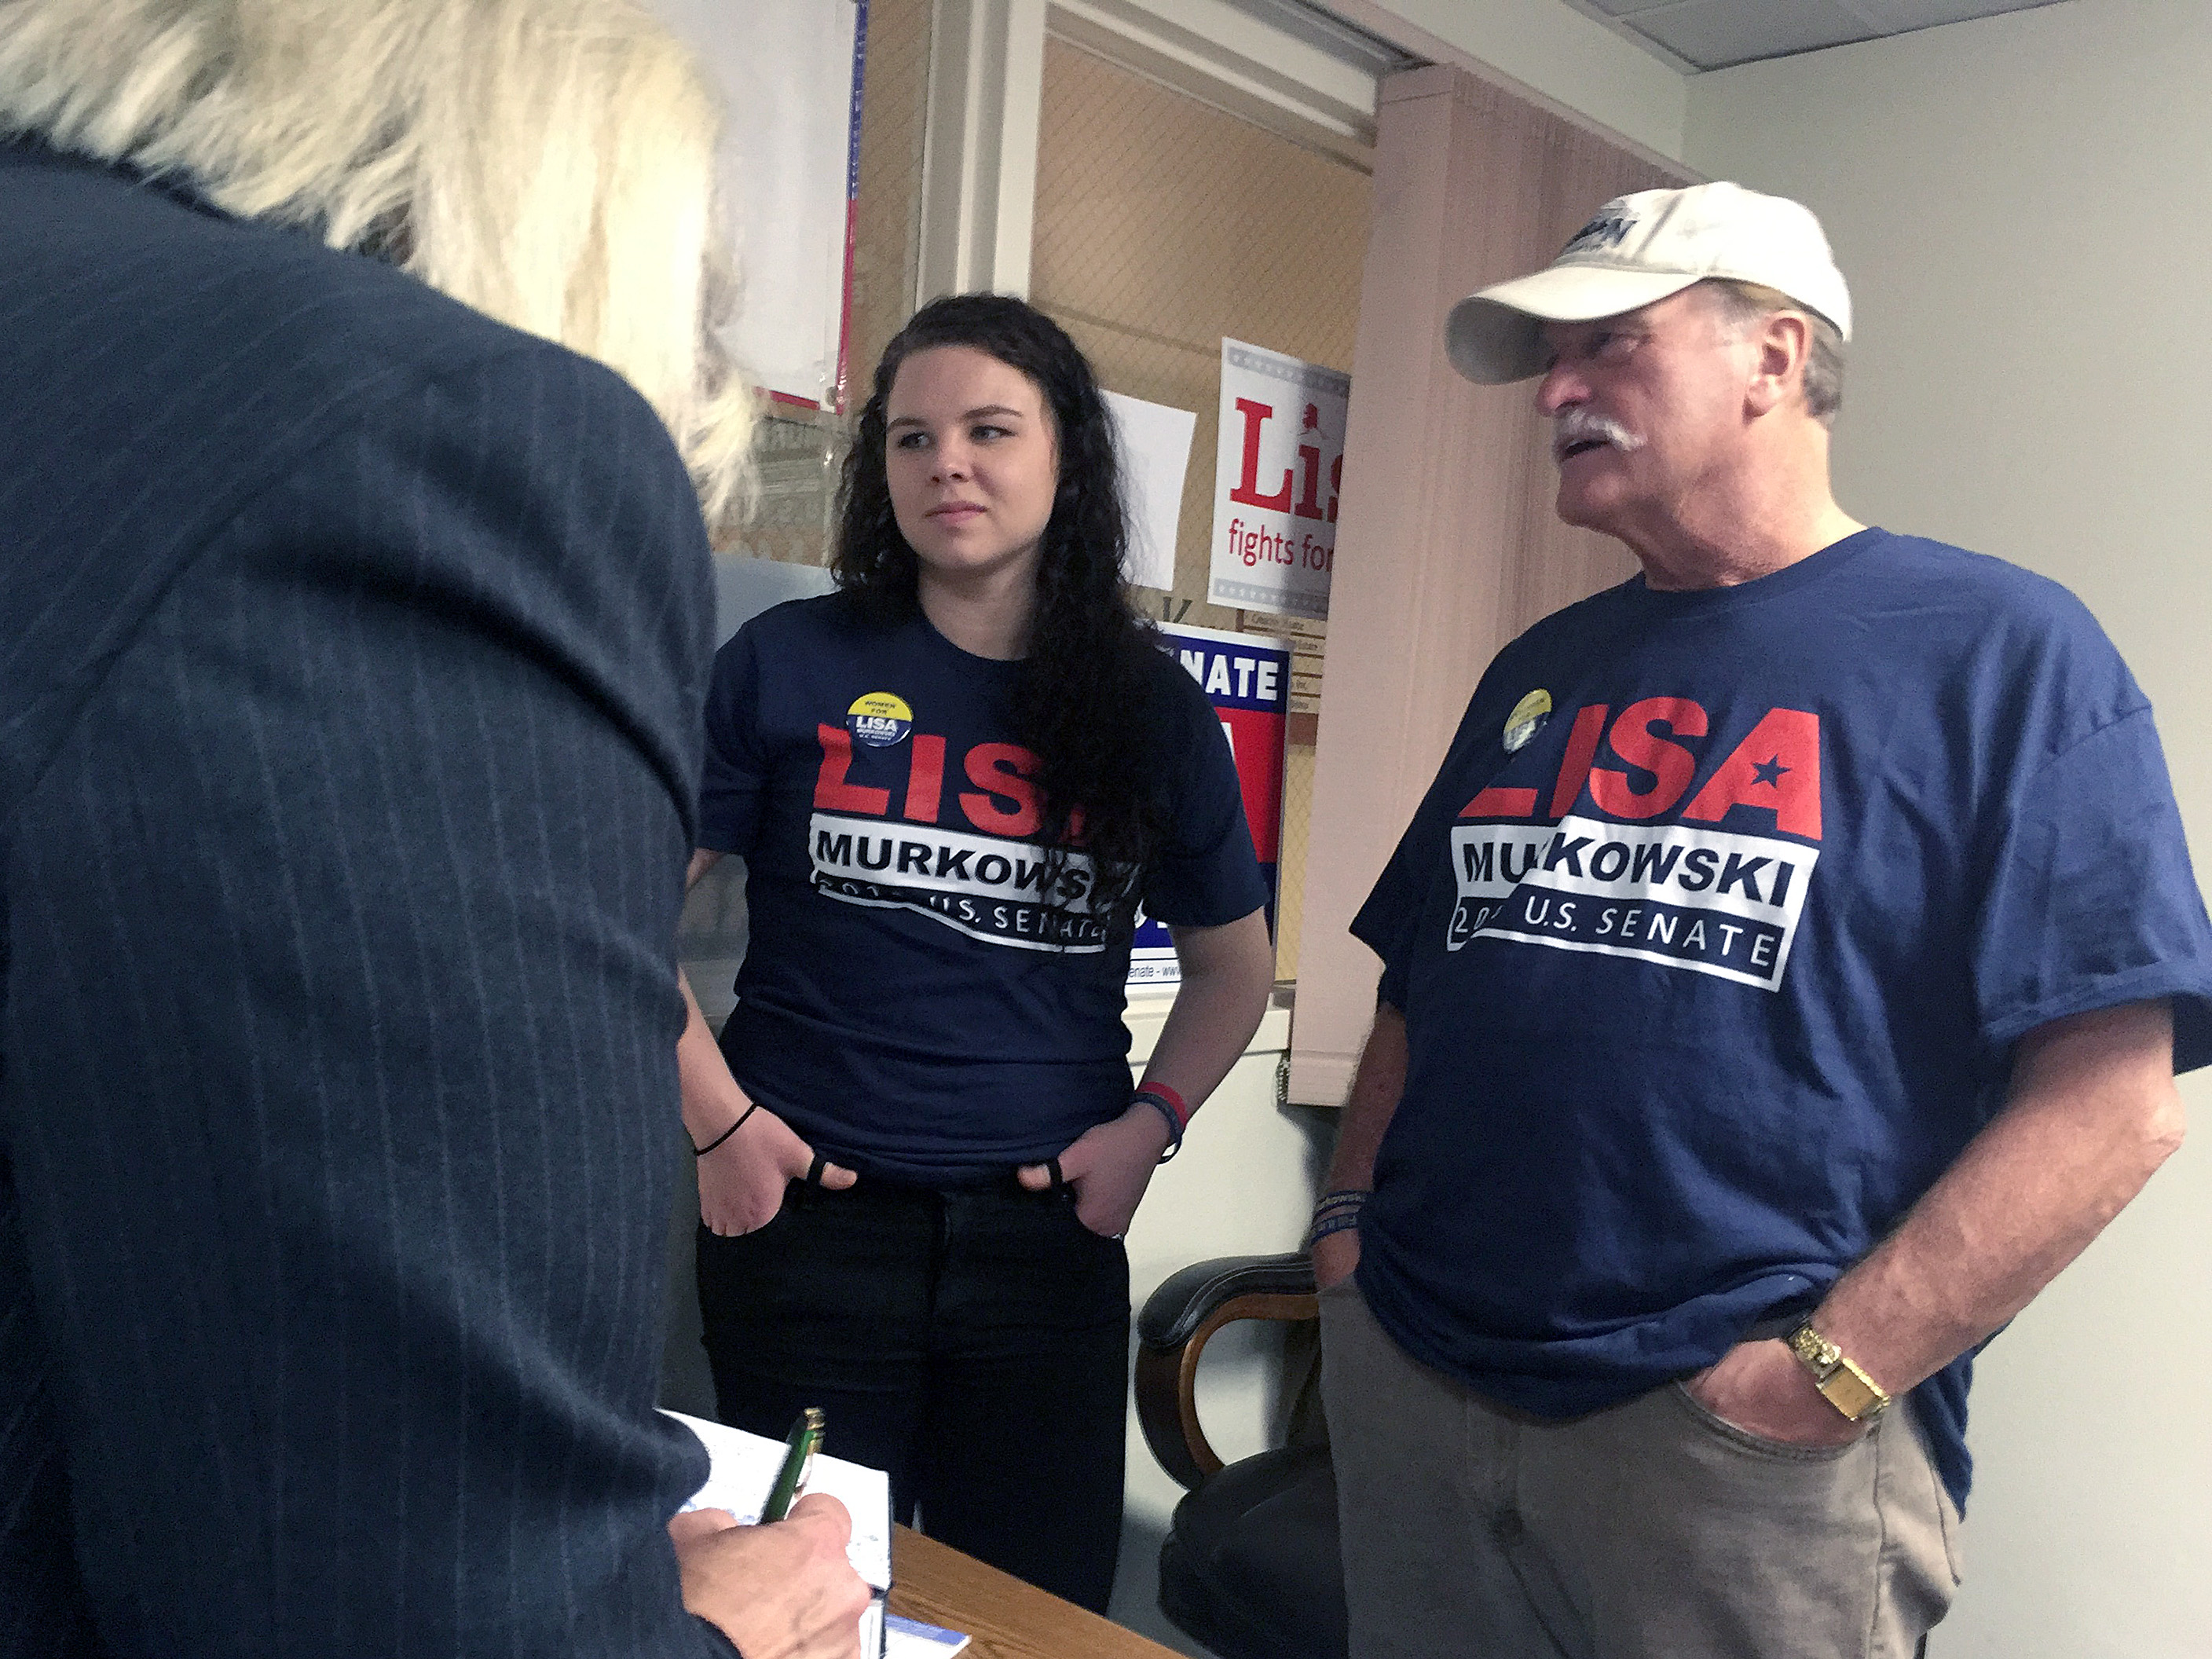 Don Kubley chats with guests during a meet-and-greet with U.S. Senate candidate Lisa Murkowski on Oct. 17, 2016 in Juneau, Alaska. Kubley is supporting Donald Trump for president and says energy policy and Alaska's future weighed heavily on the decision. (Photo by Rashah McChesney/Alaska's Energy Desk)